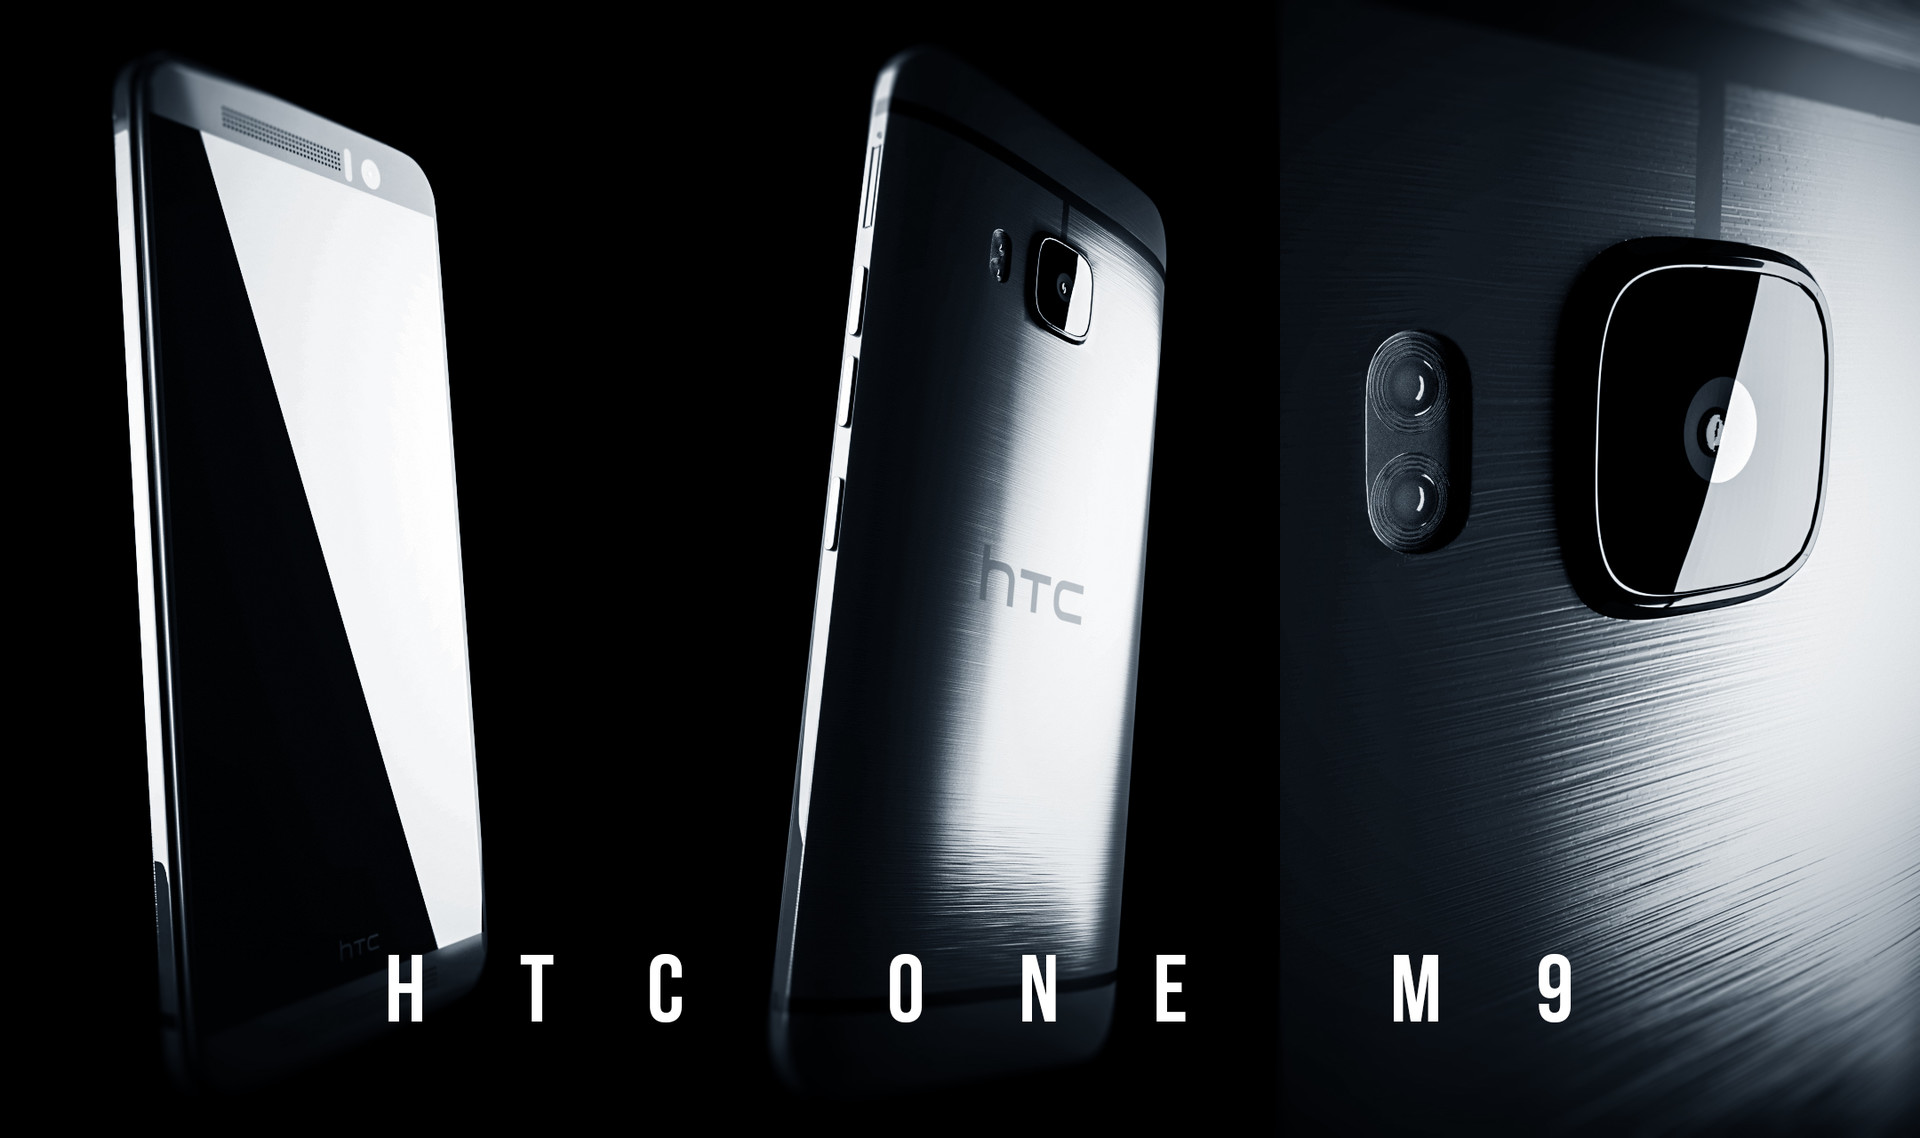 Ravissen carpenen htc one m9 second